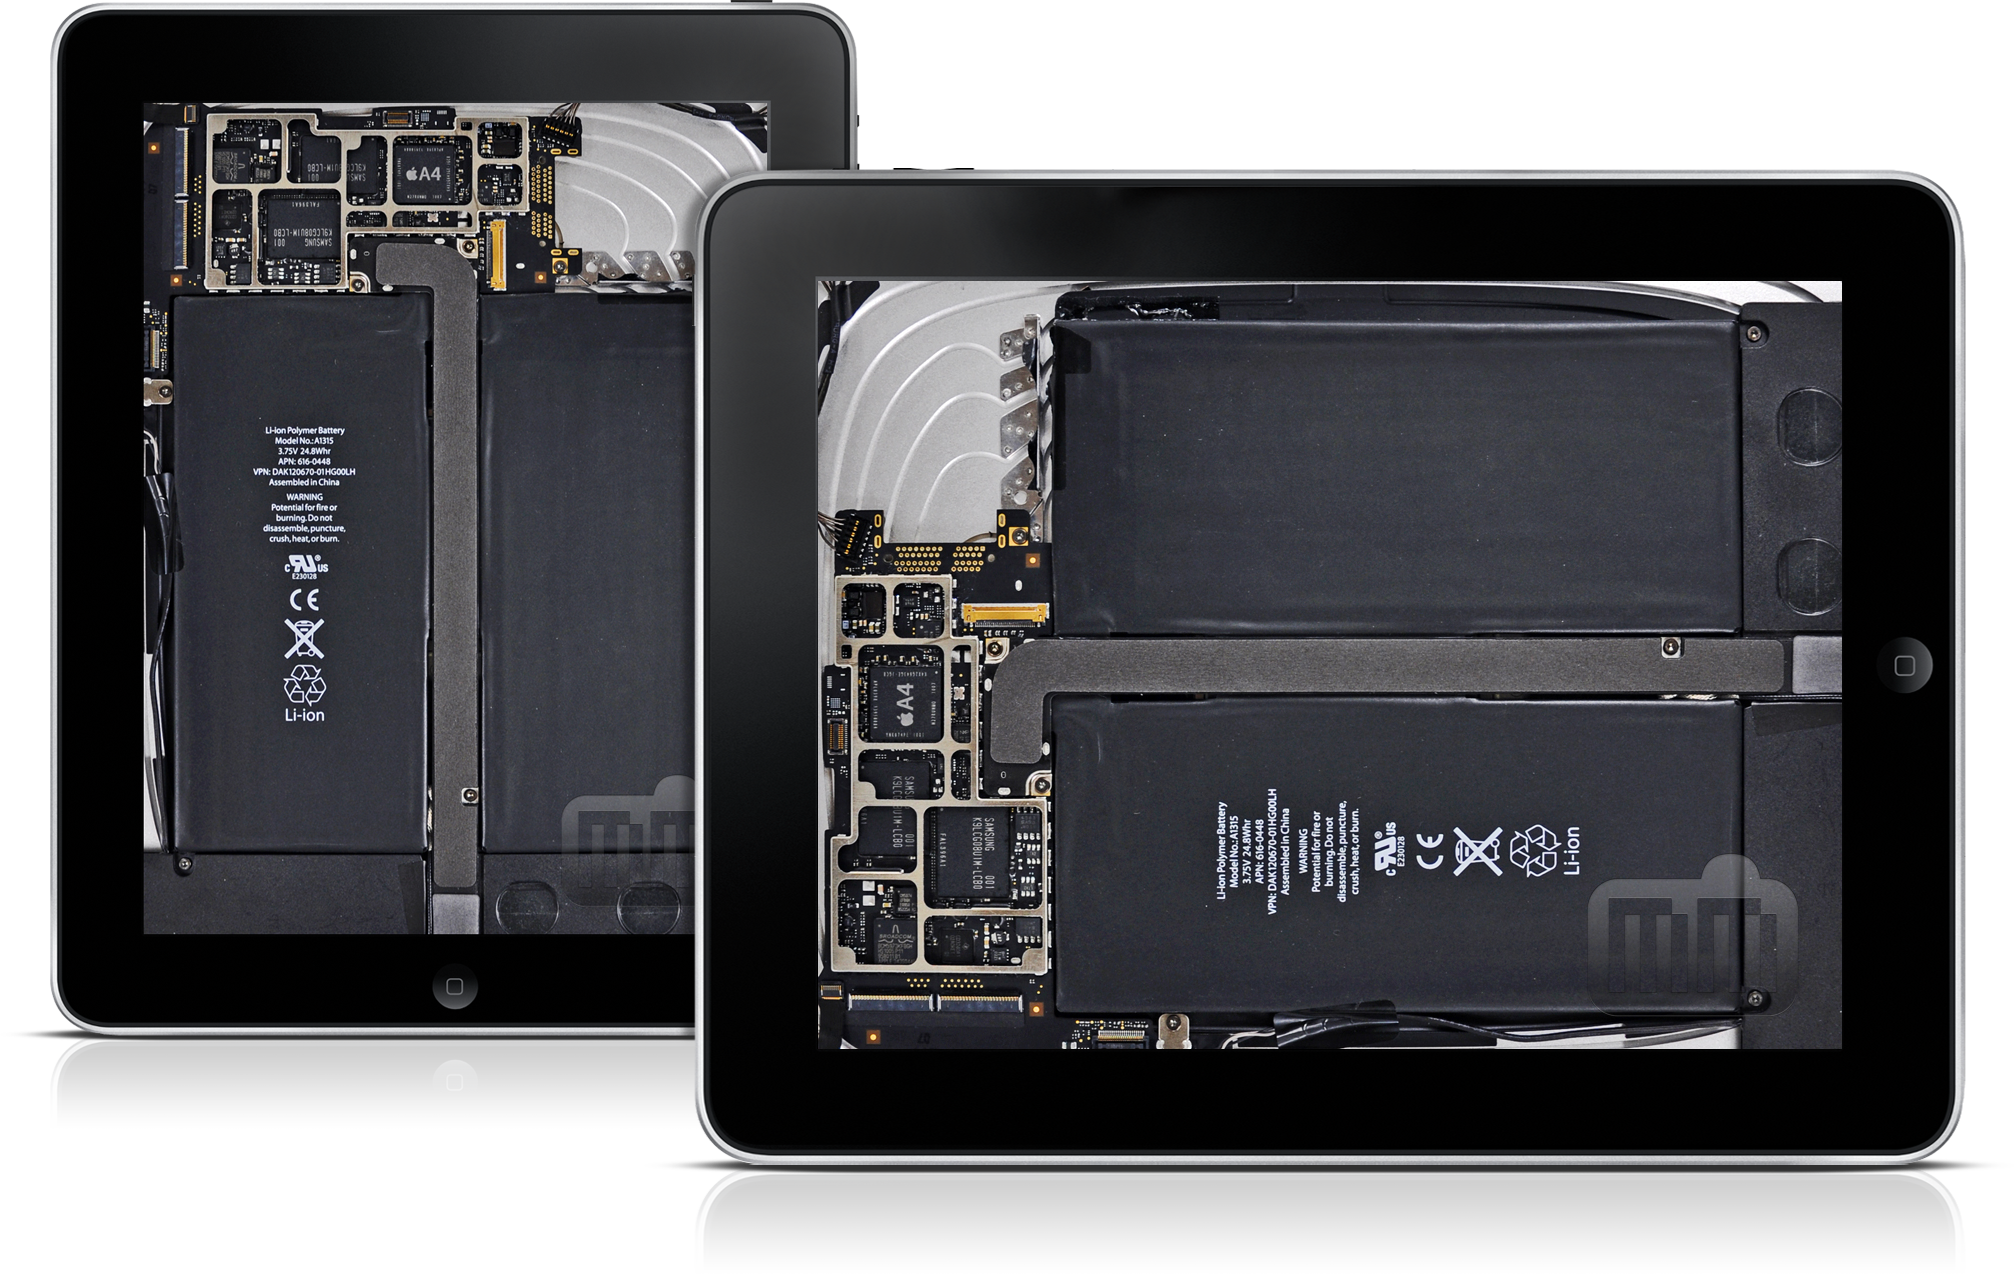 Wallpaper interno do iPad Wi-Fi, via iFixit